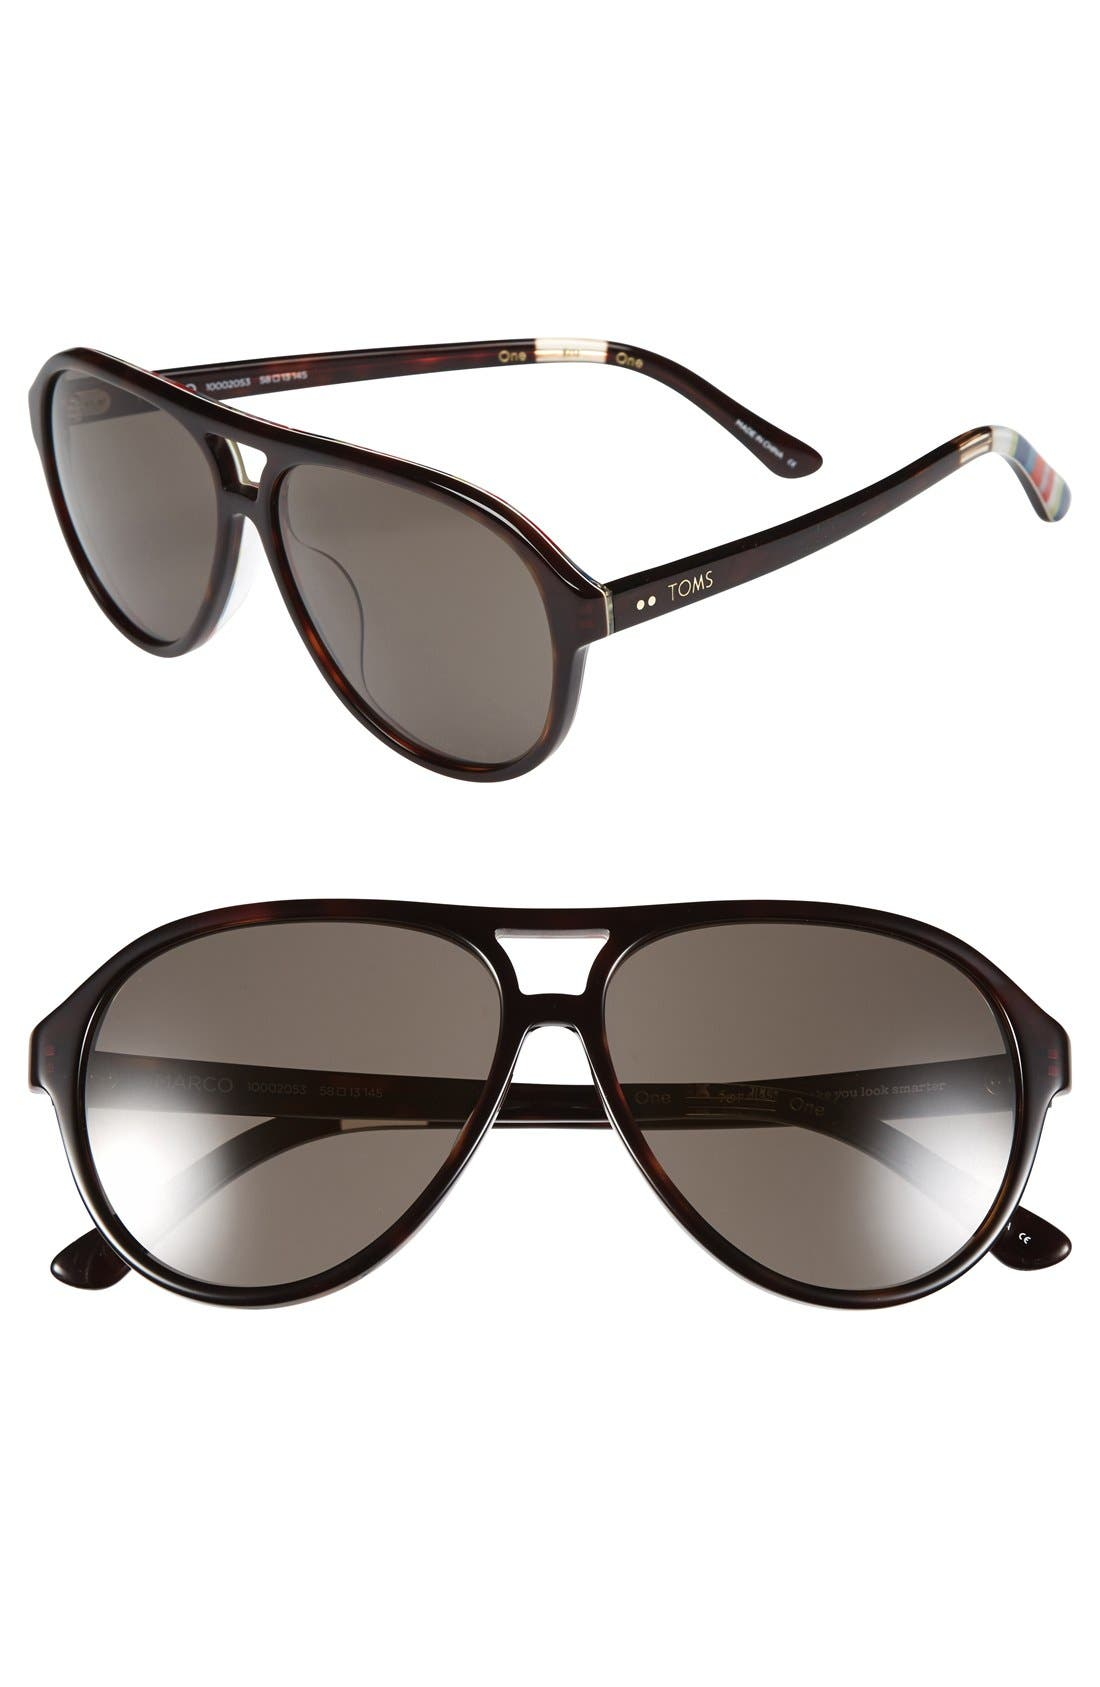 Main Image - TOMS 'Marco' 58mm Sunglasses